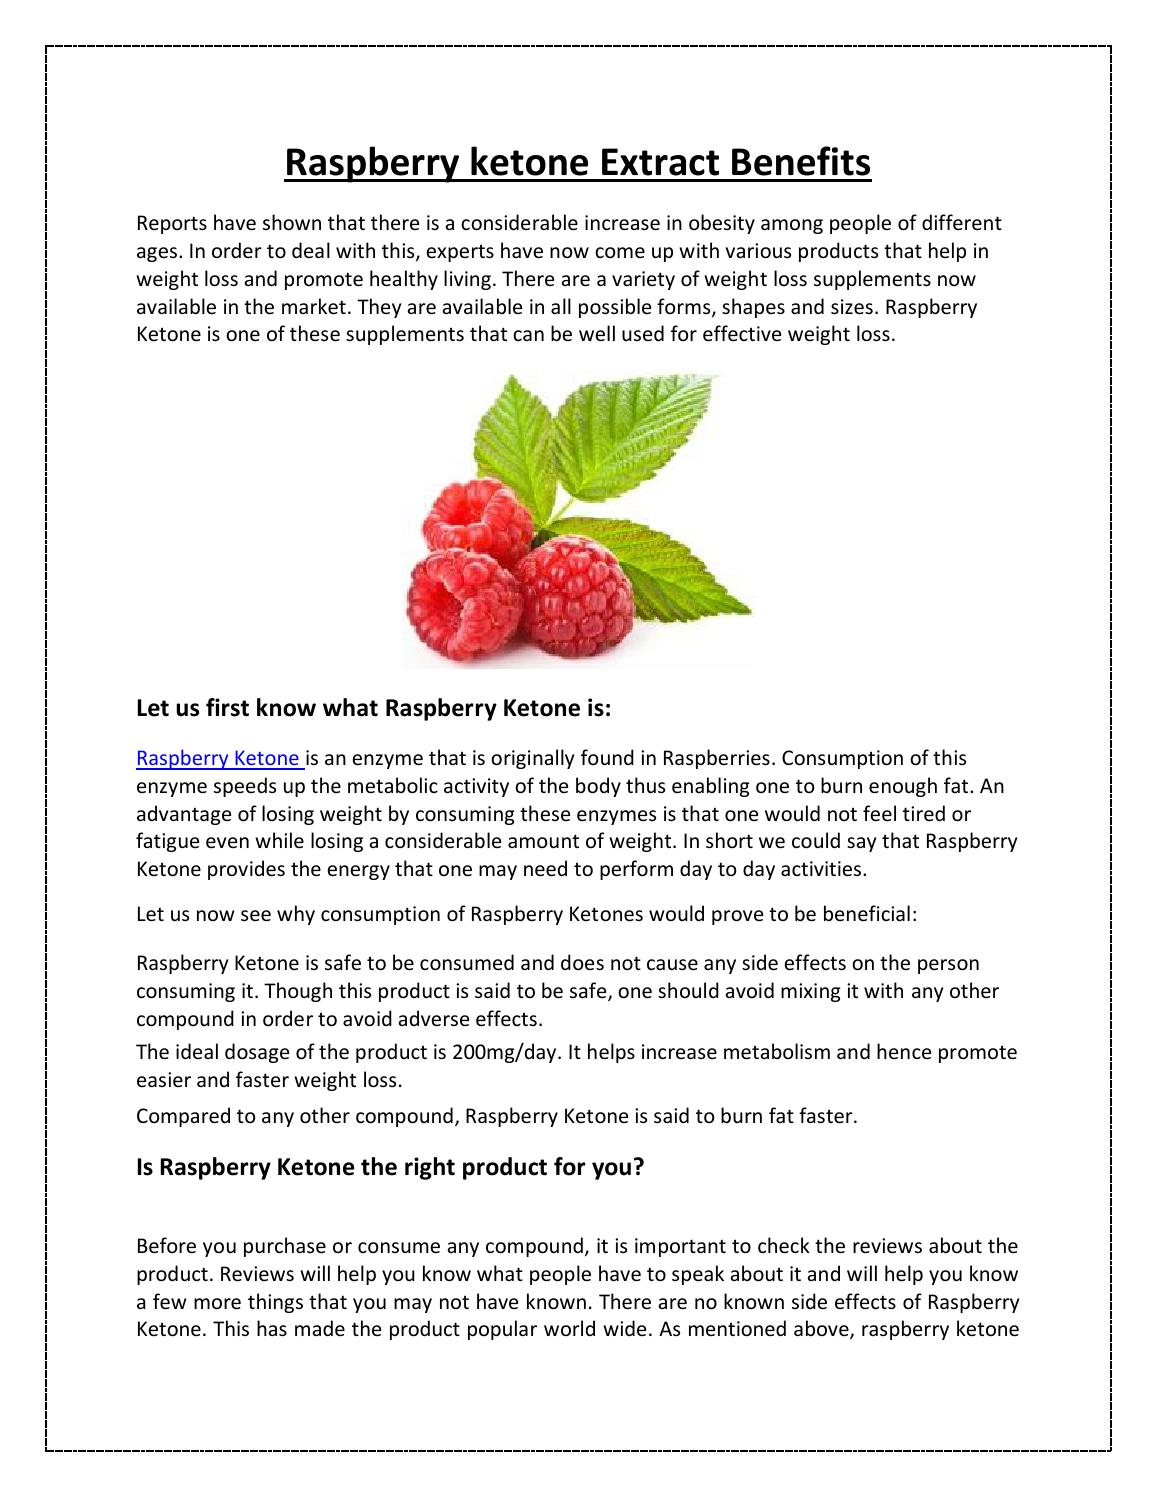 Raspberry Ketone Extract Benefits By James Hundson Issuu